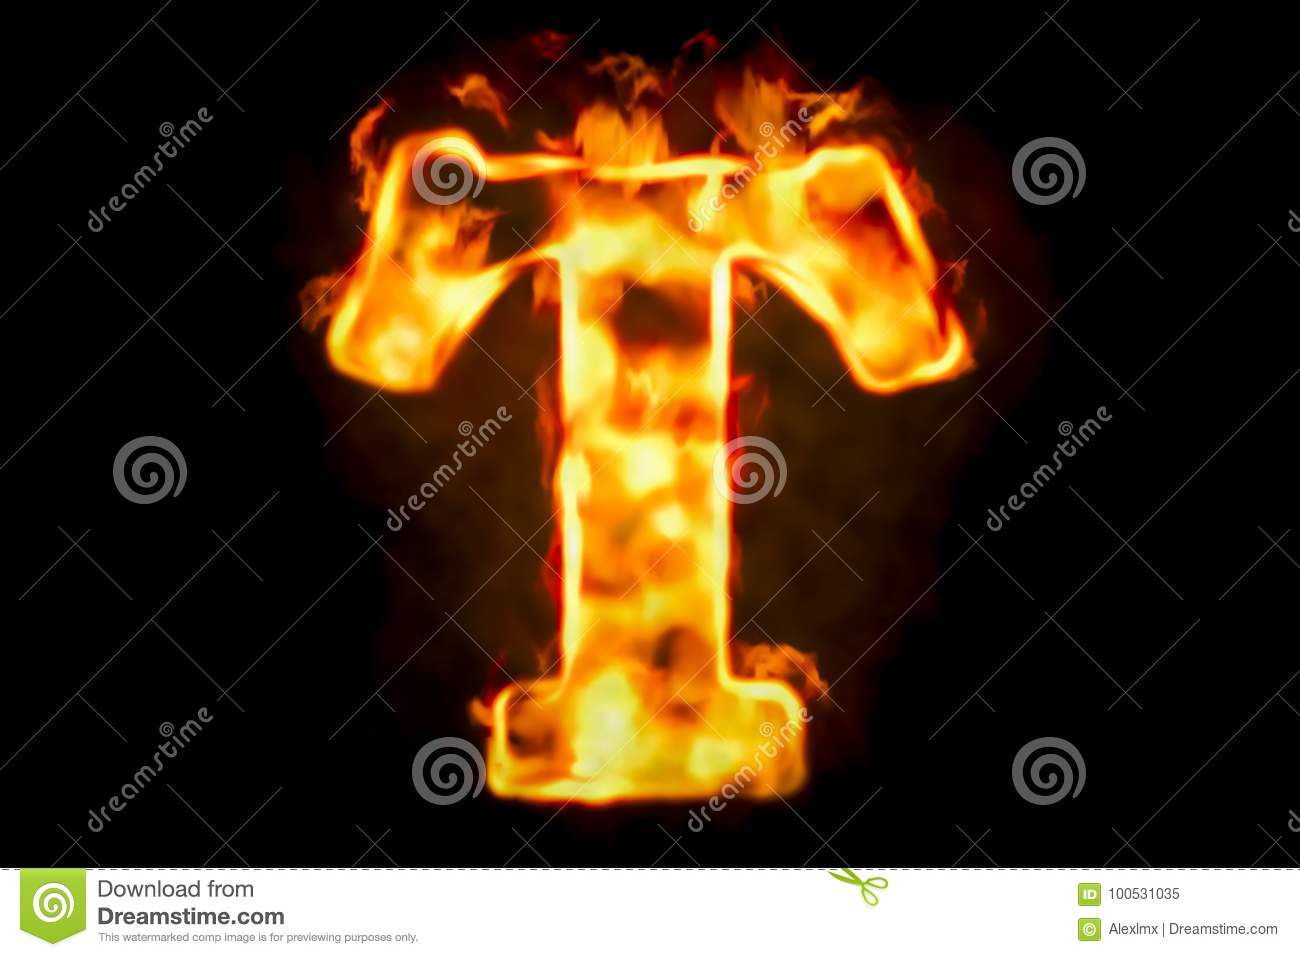 Fire letter t of burning flame light 3d rendering stock download fire letter t of burning flame light 3d rendering stock illustration illustration of thecheapjerseys Image collections